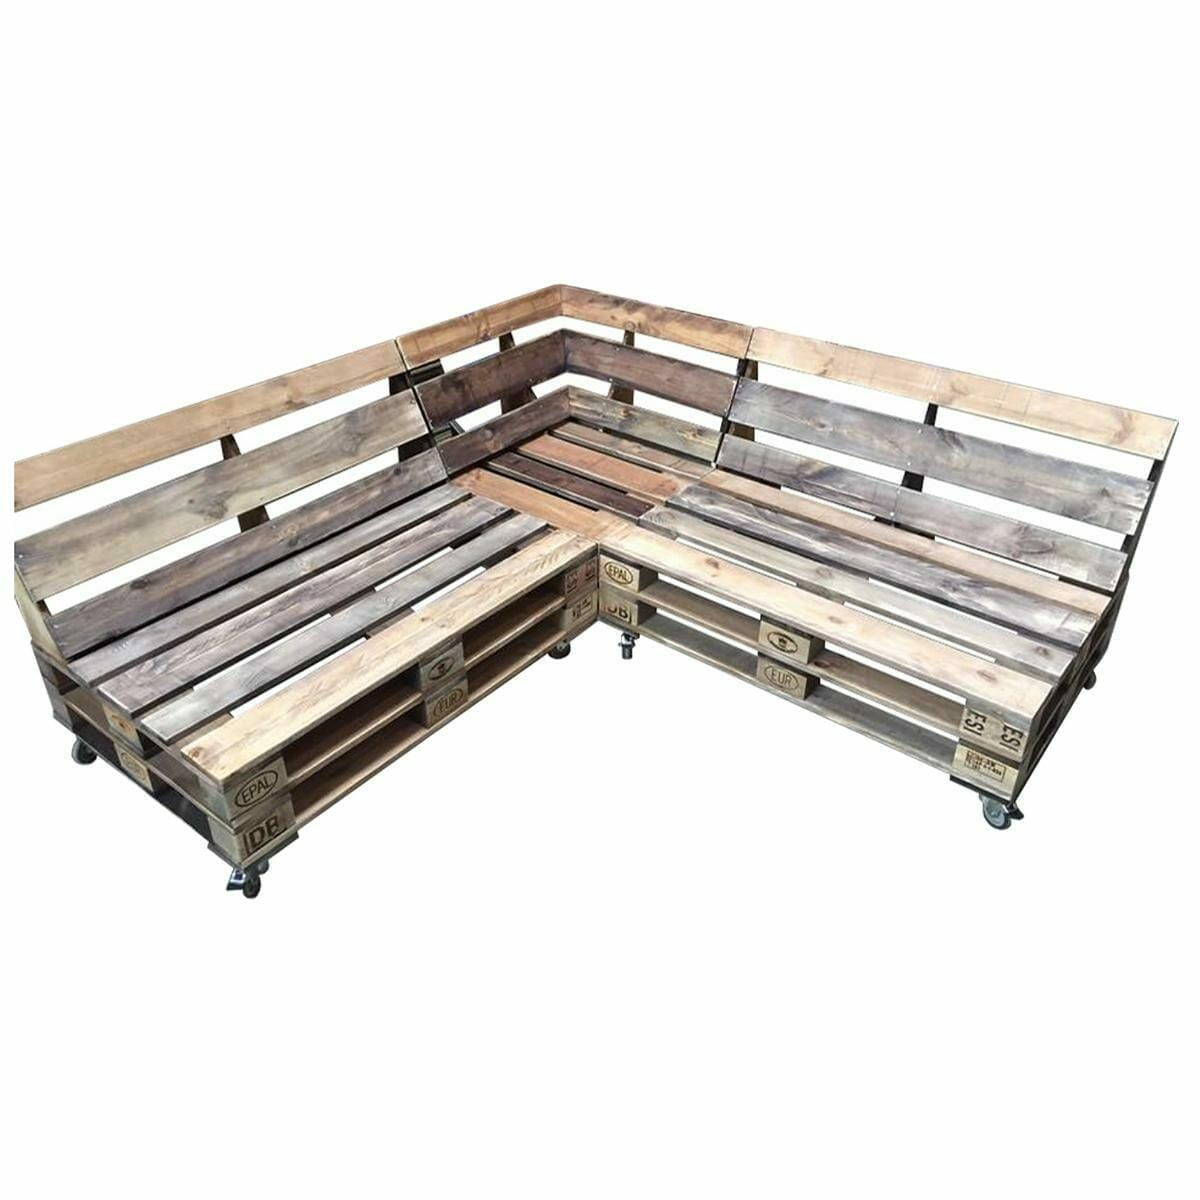 Gartenmobel Aus Paletten Gartenmobel Aus Europaletten Palettenmobel Garten Mobel Im Shop Kaufen Diy In 2020 Diy Patio Furniture Garden Furniture Pallet Lounge